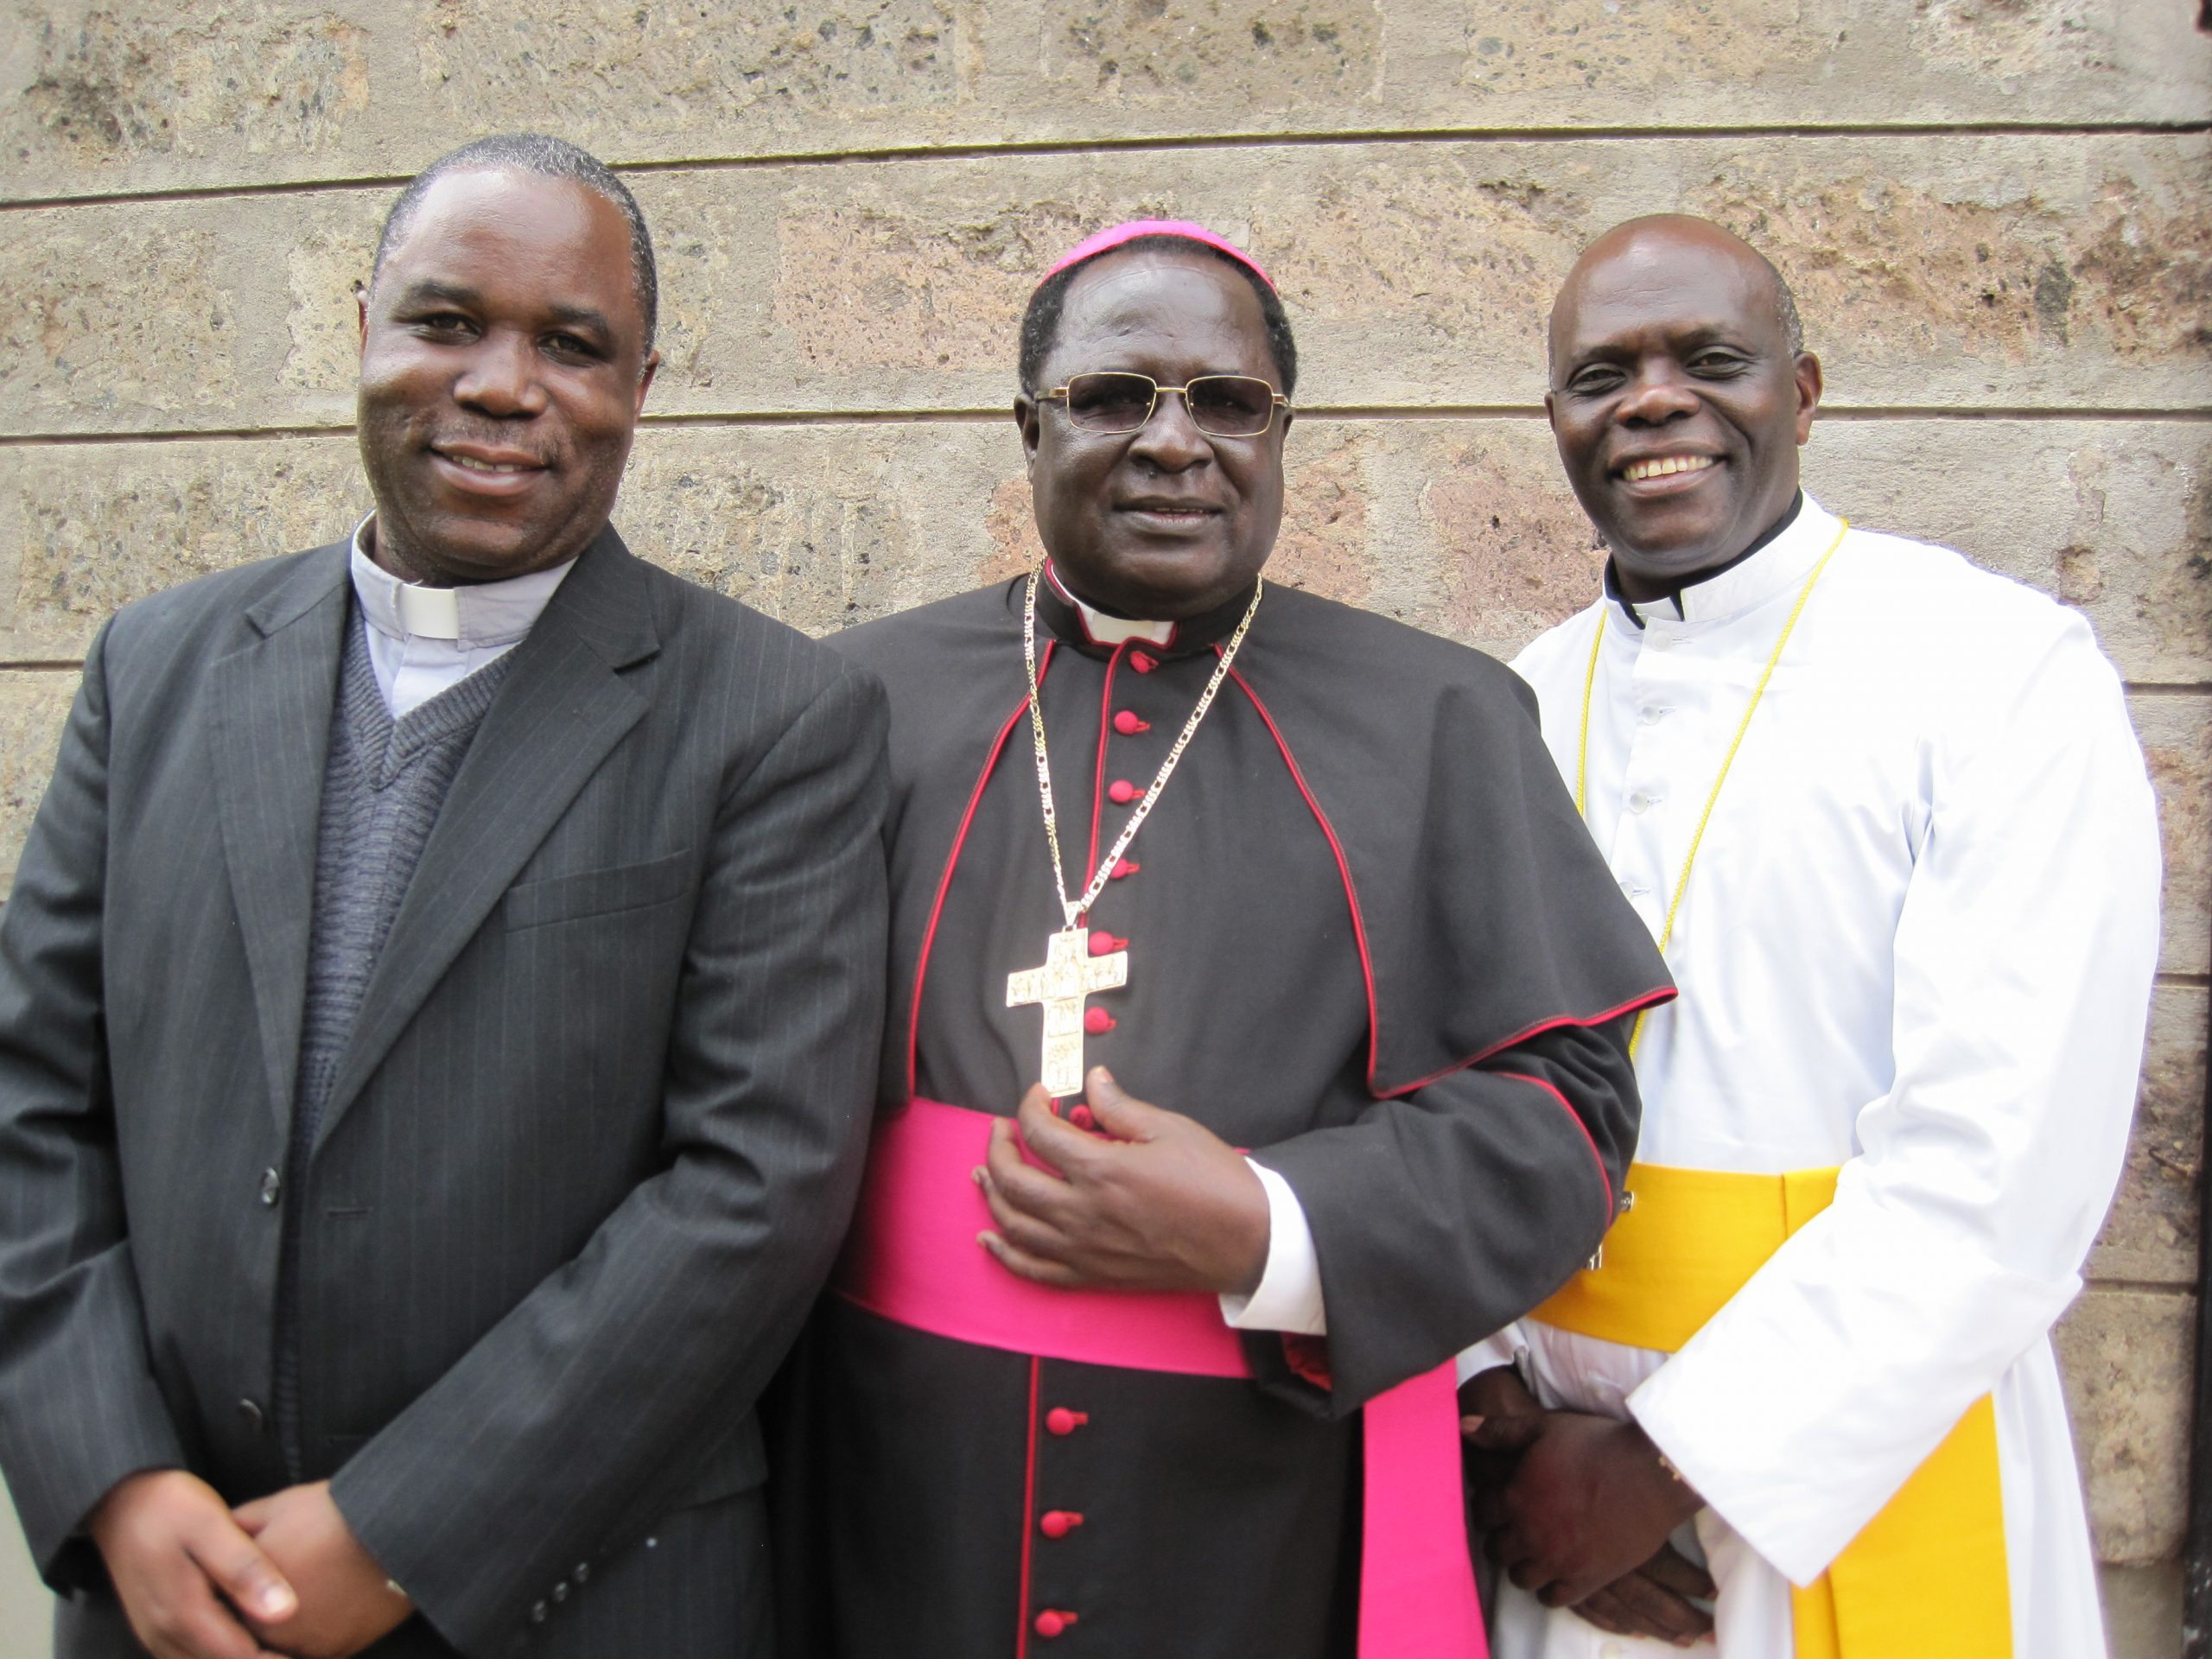 Archbishop Emmanuel Obbo, AJ (Center), Archbishop of the Roman Catholic Archdiocese of Tororo, with former superiors, Very Rev. Fr. Speratus Kamanzi, AJ (Left) & Very Rev. Fr. Silvester Arenaitwe, AJ (Right) , AJ | File Photo